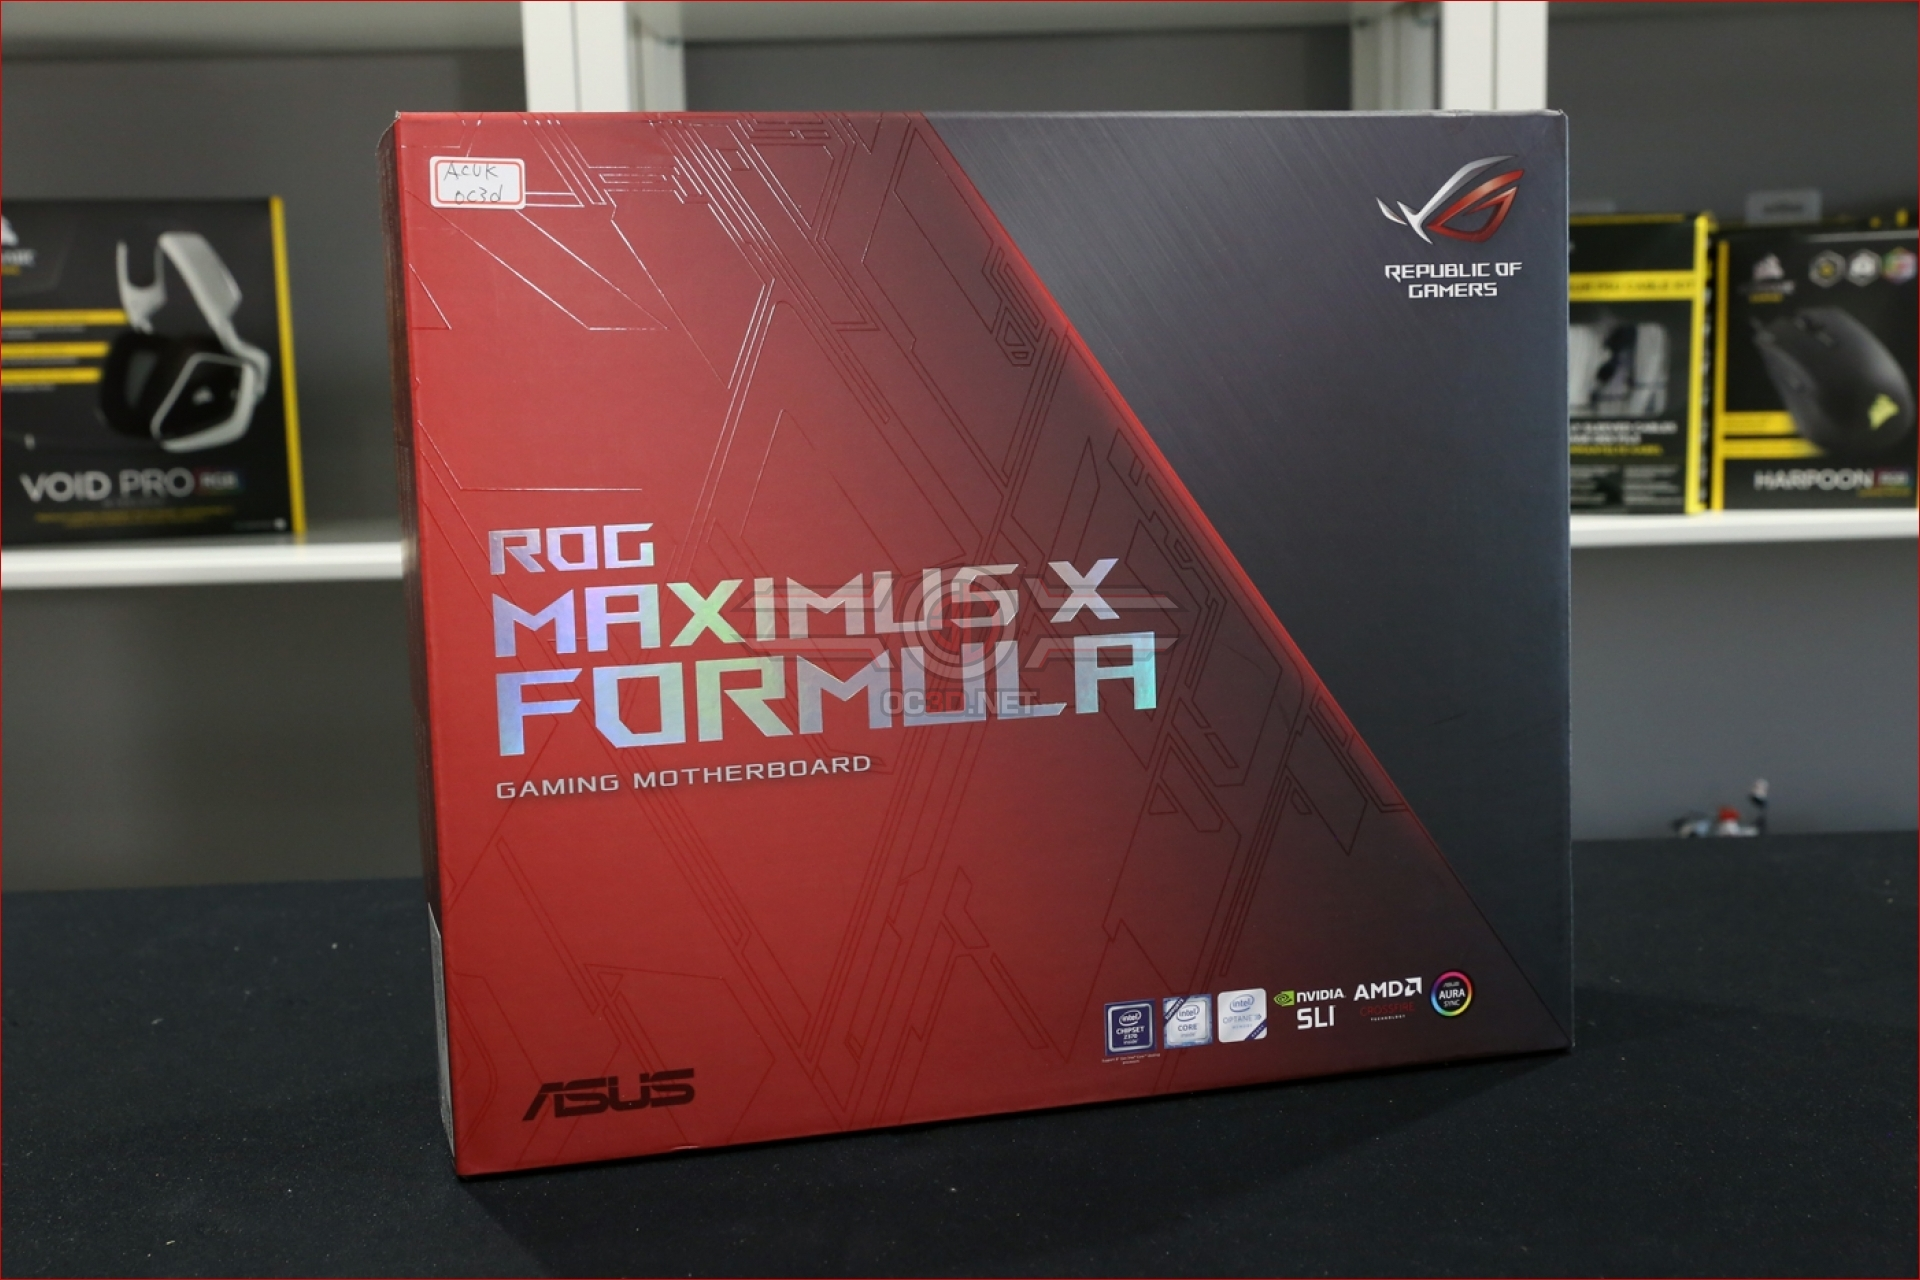 asus rog z370 maximus x formula review up close cpu mainboard oc3d review. Black Bedroom Furniture Sets. Home Design Ideas